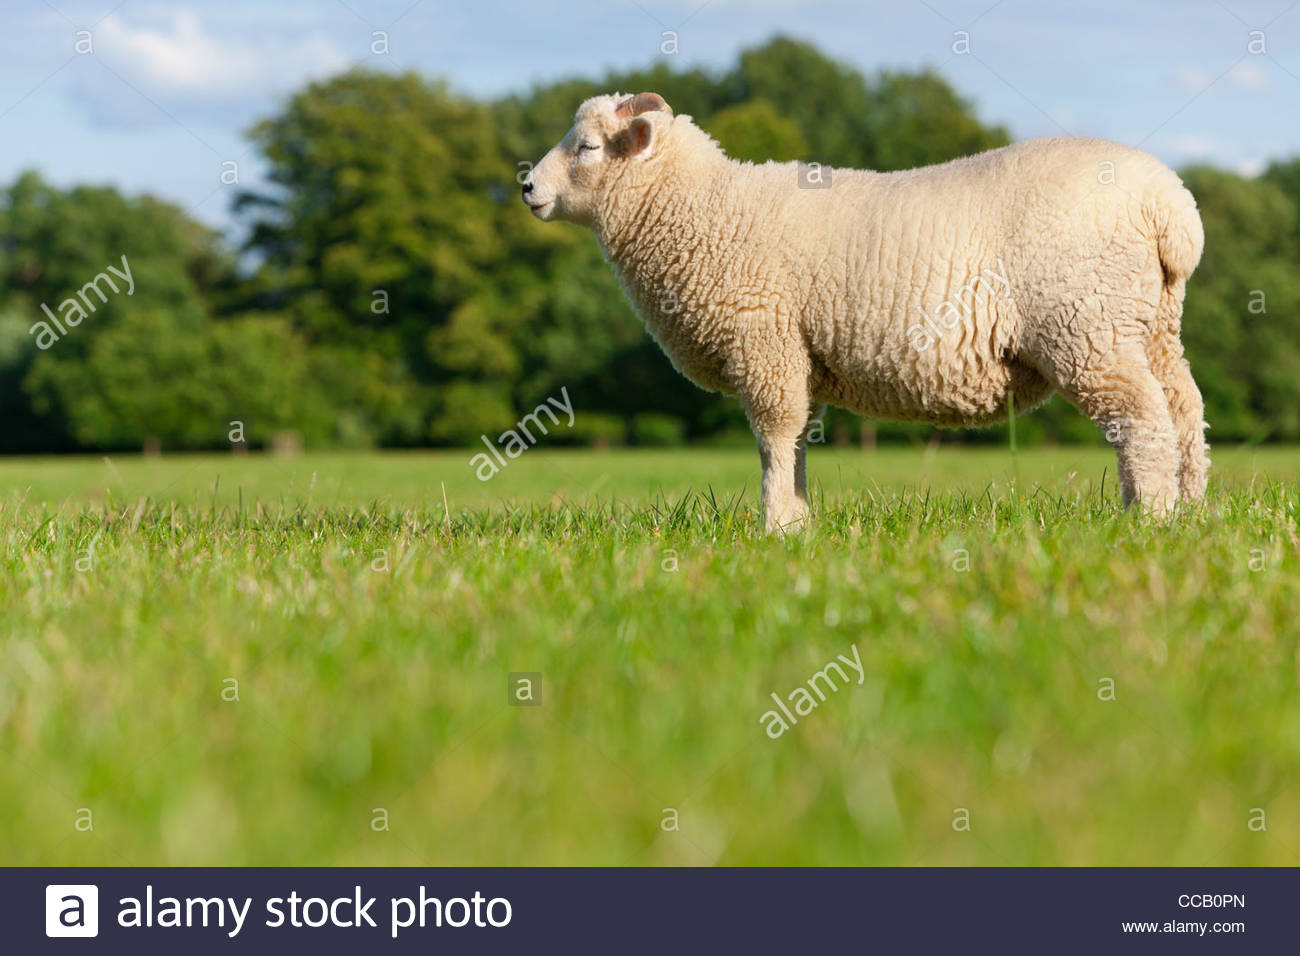 Sheep standing in field - Stock Image